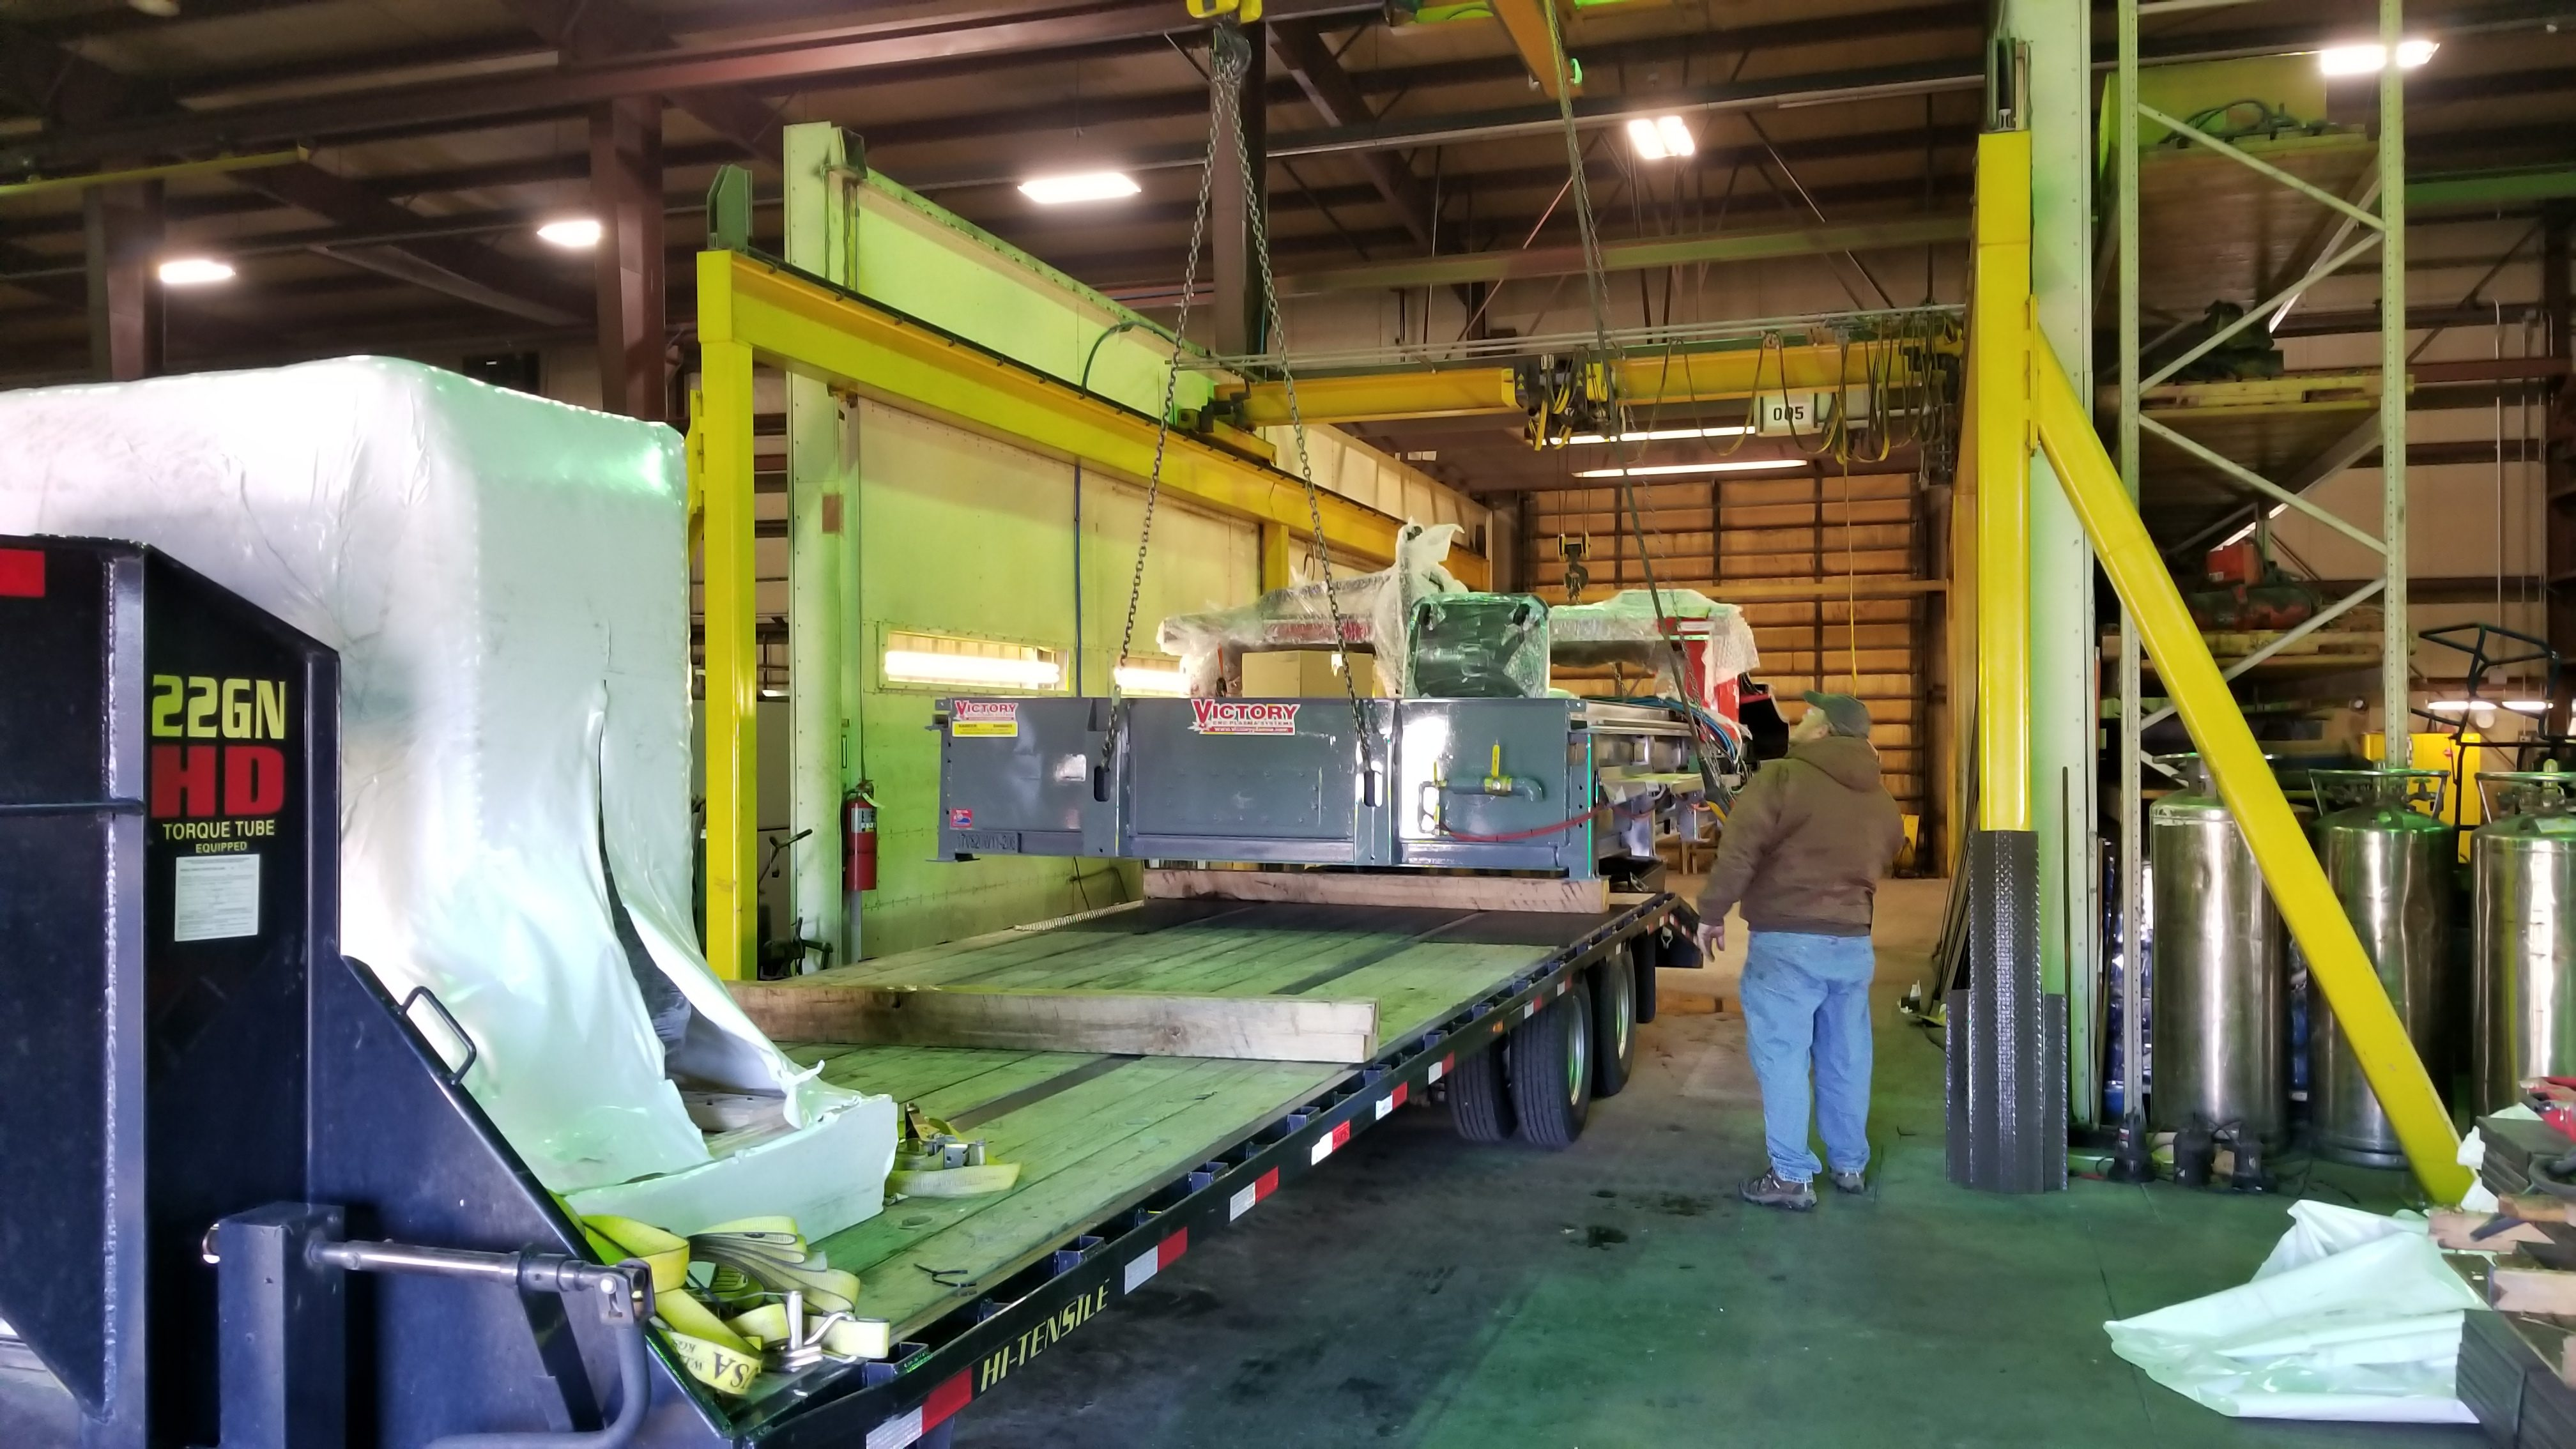 Victory CNC Plasma Systems 8'x20' Hypertherm EDGE Connect system with high-def XPR300 & True Hole